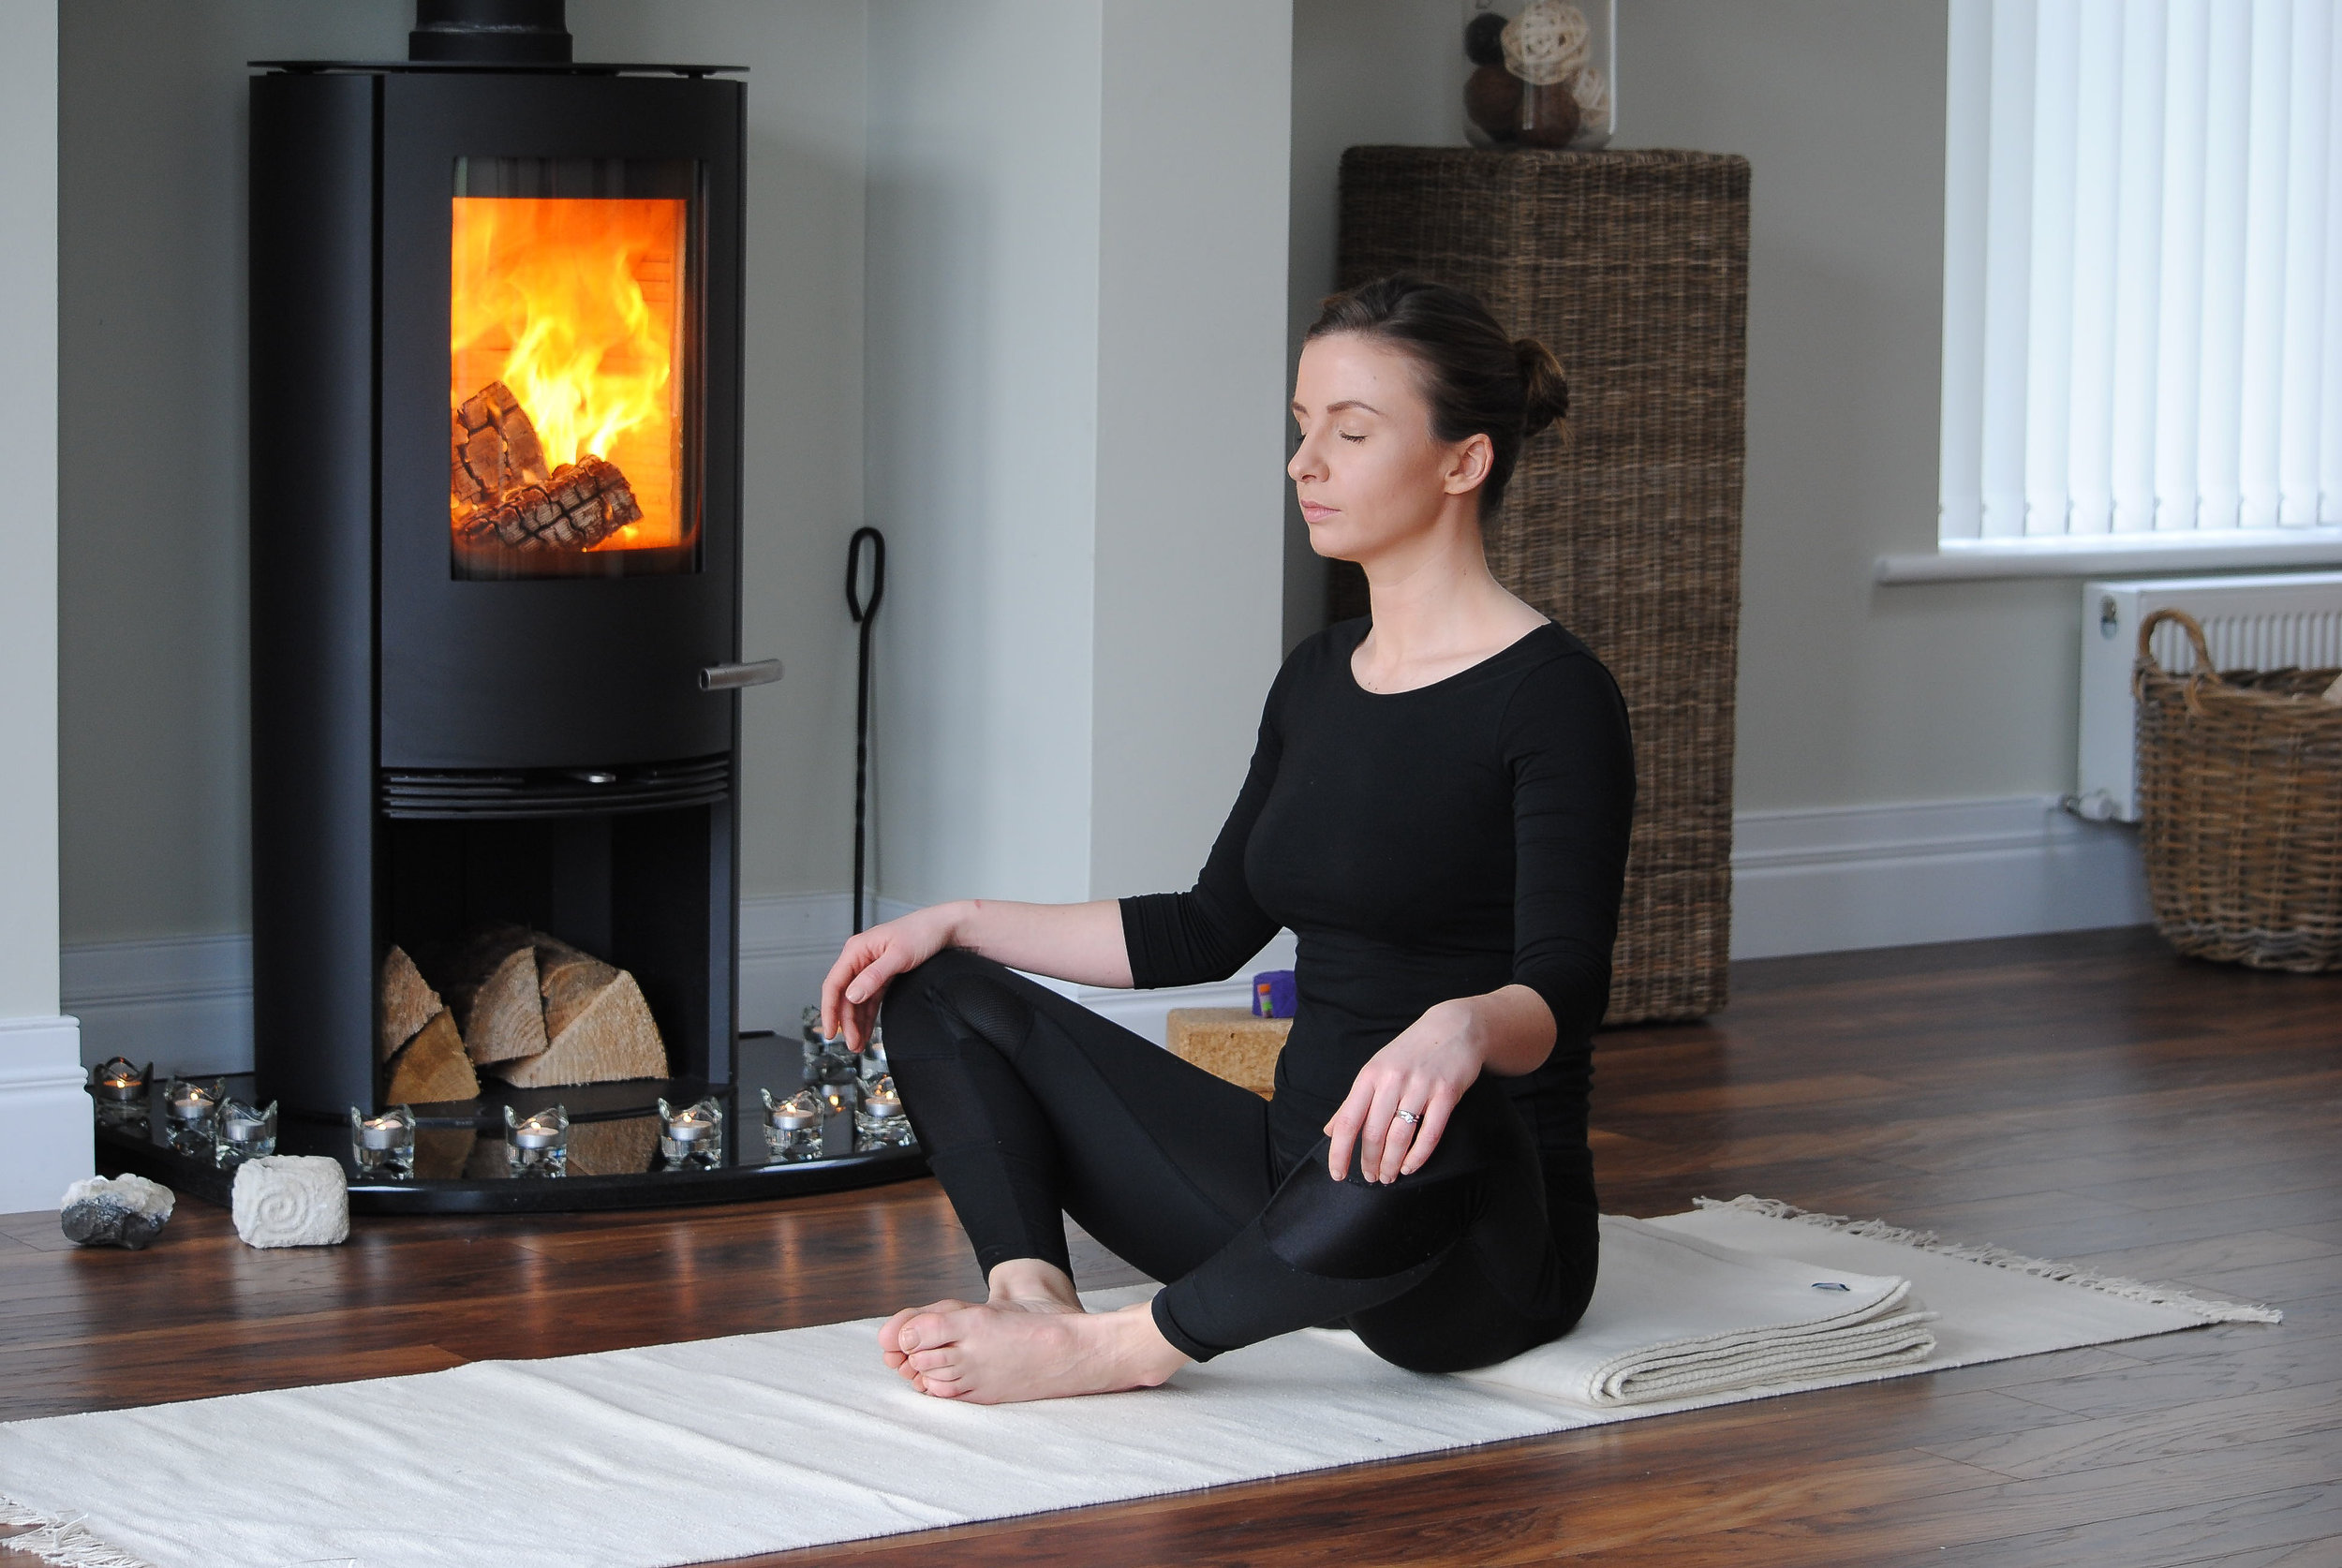 Stress Management: Mindfulness is one of the most effective practices to help release stress and restore balance.